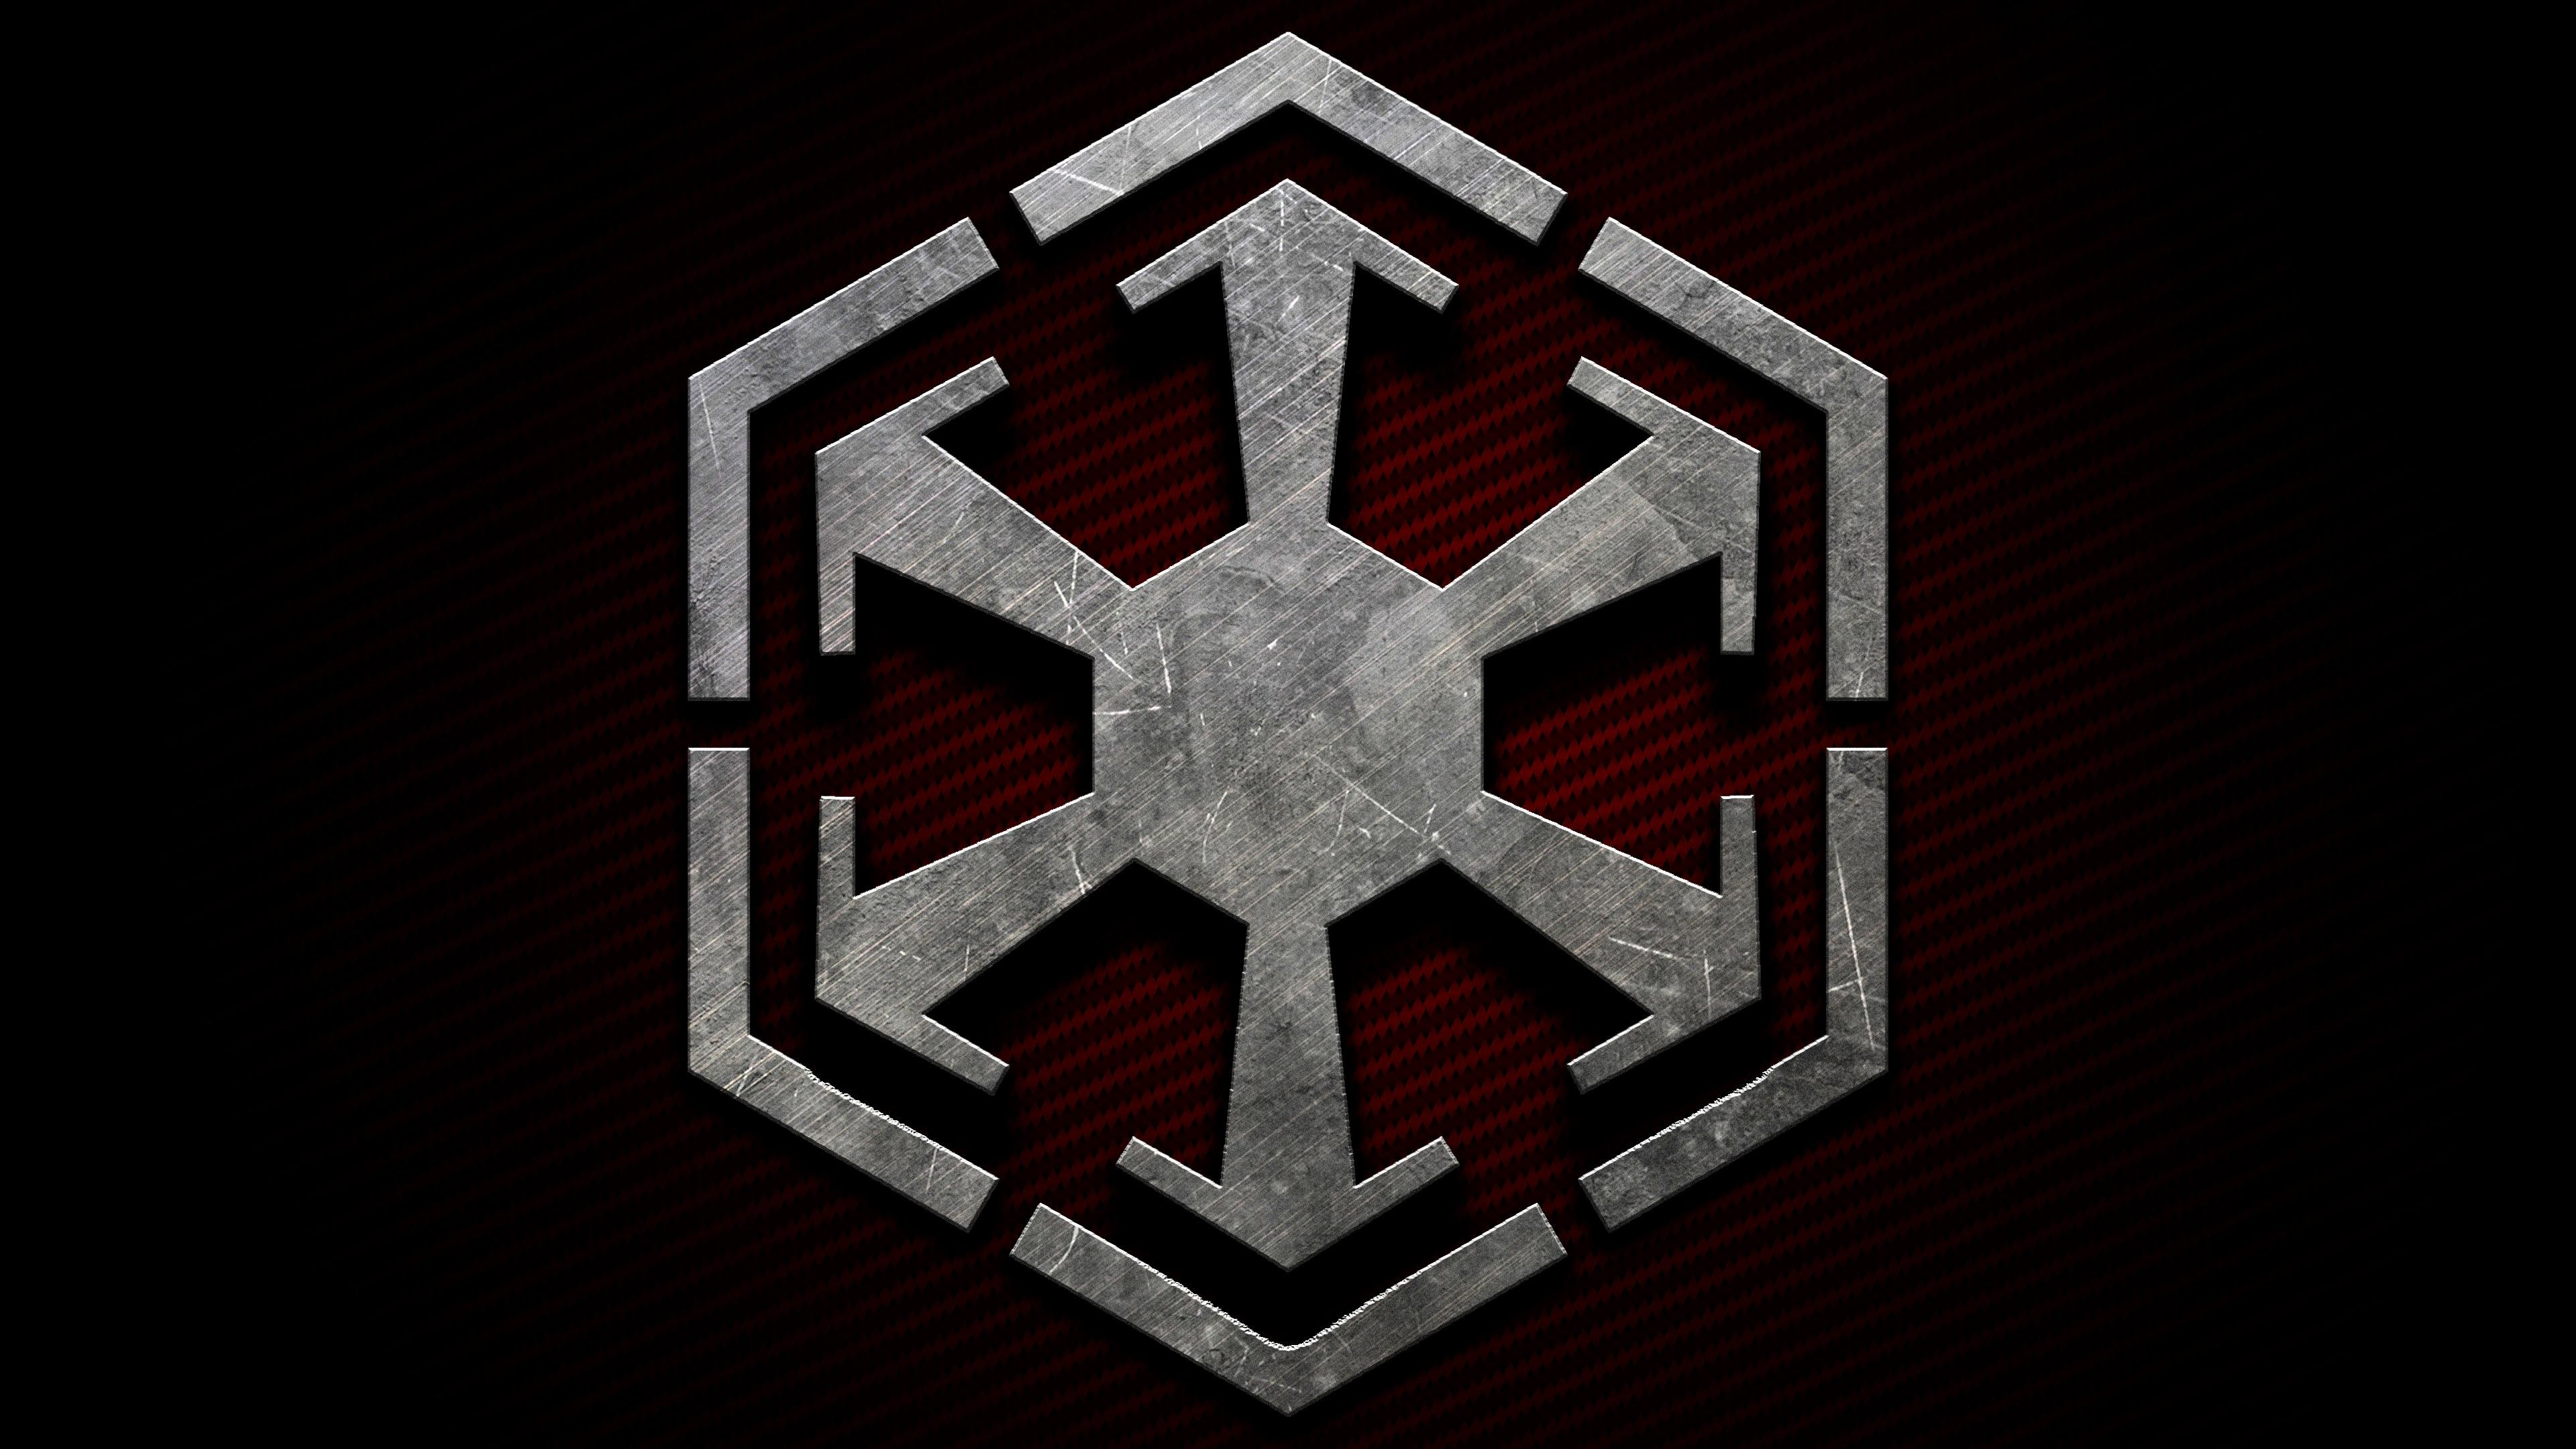 3840x2160 4k Star Wars Old Republic Empire symbol : wallpapers